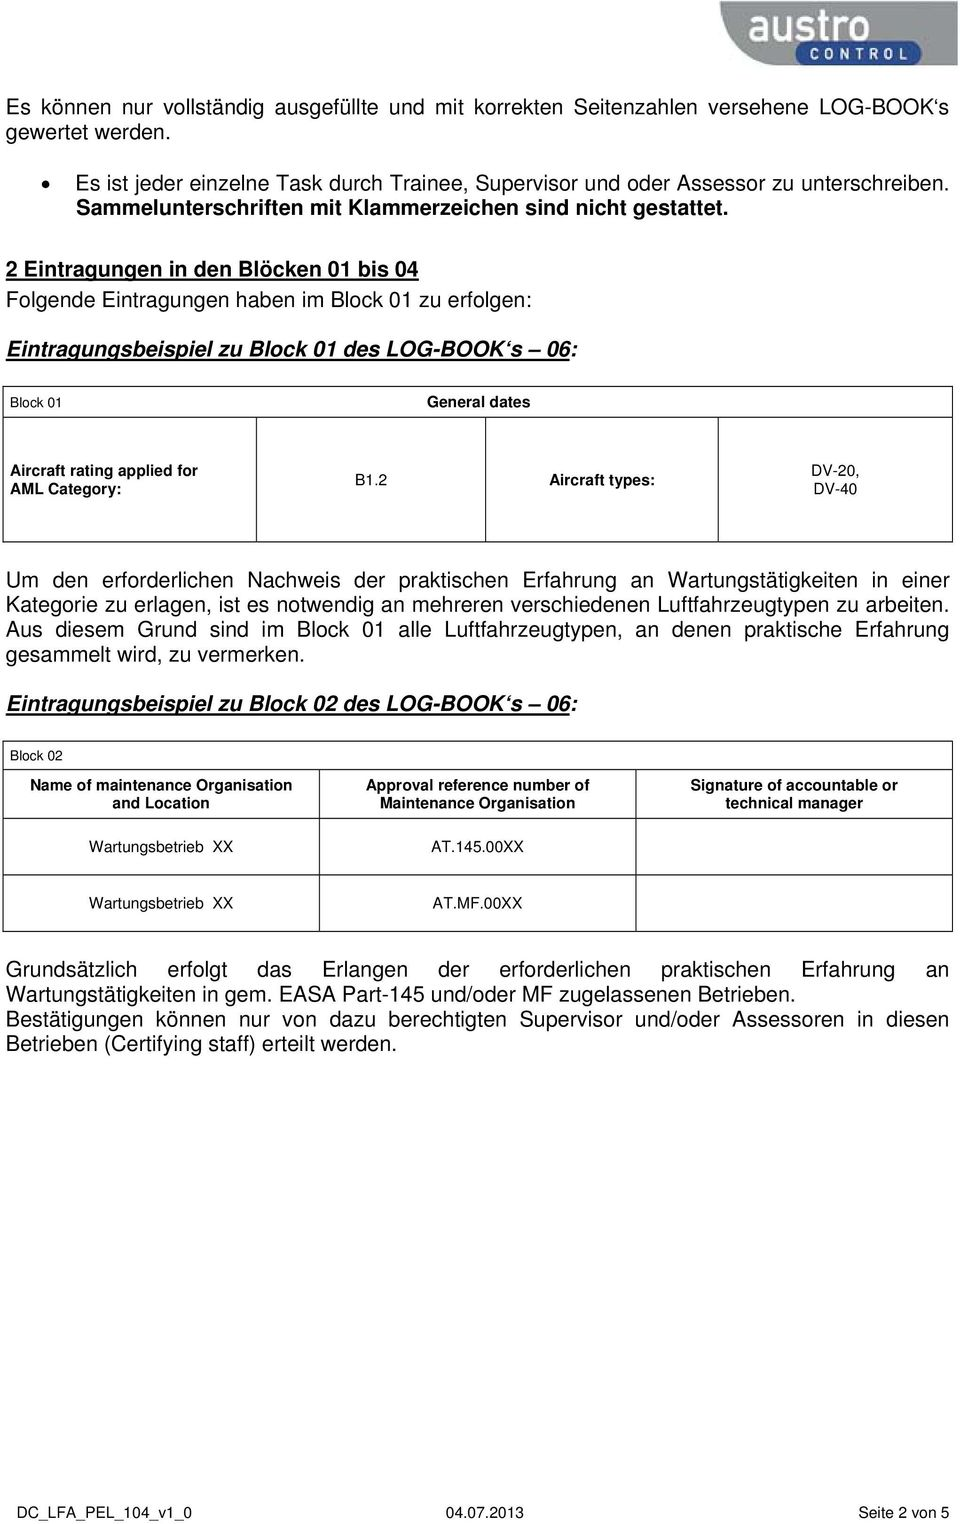 2 Eintragungen in den Blöcken 01 bis 04 Folgende Eintragungen haben im Block 01 zu erfolgen: Eintragungsbeispiel zu Block 01 des LOG-BOOK s 06: Block 01 General dates Aircraft rating applied for AML